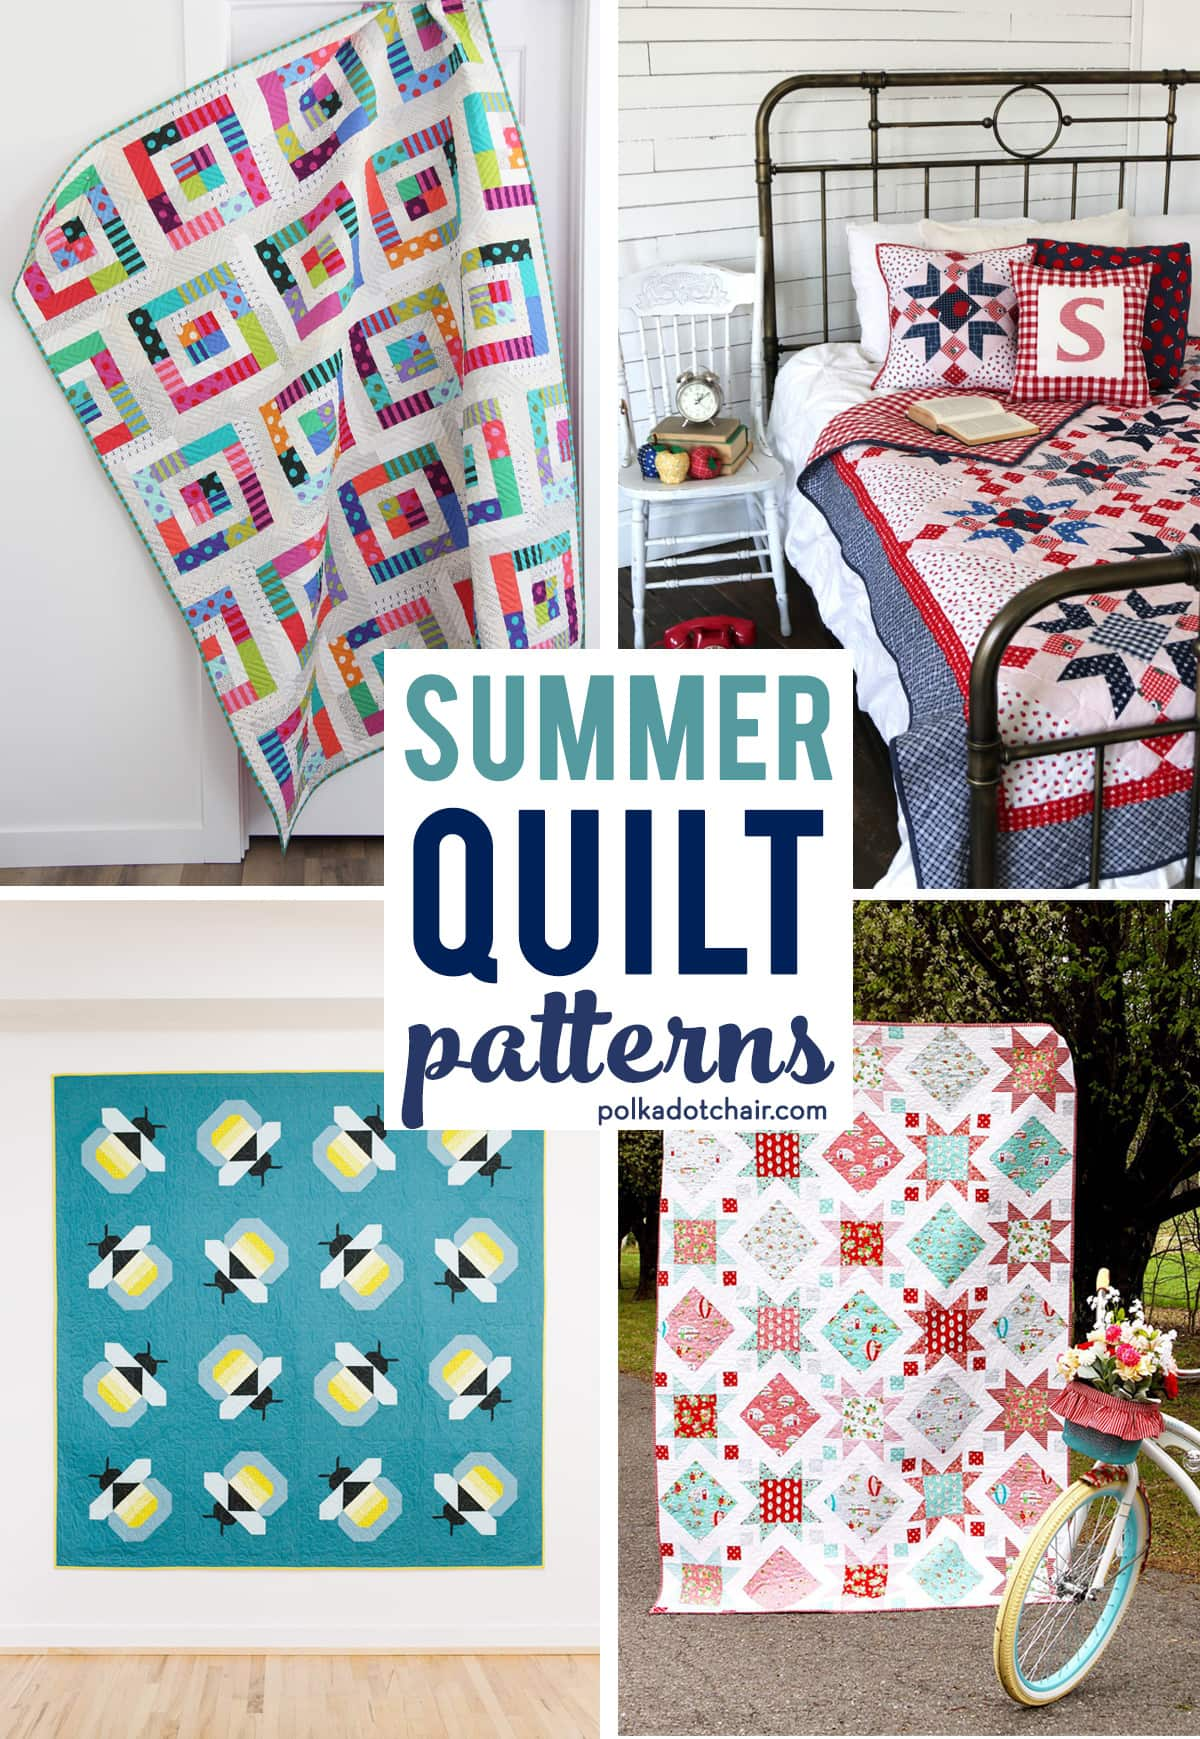 Facebook Is Great For Sharing Pictures >> 9 Fresh and Fun Summer Quilt Patterns to Start this Weekend